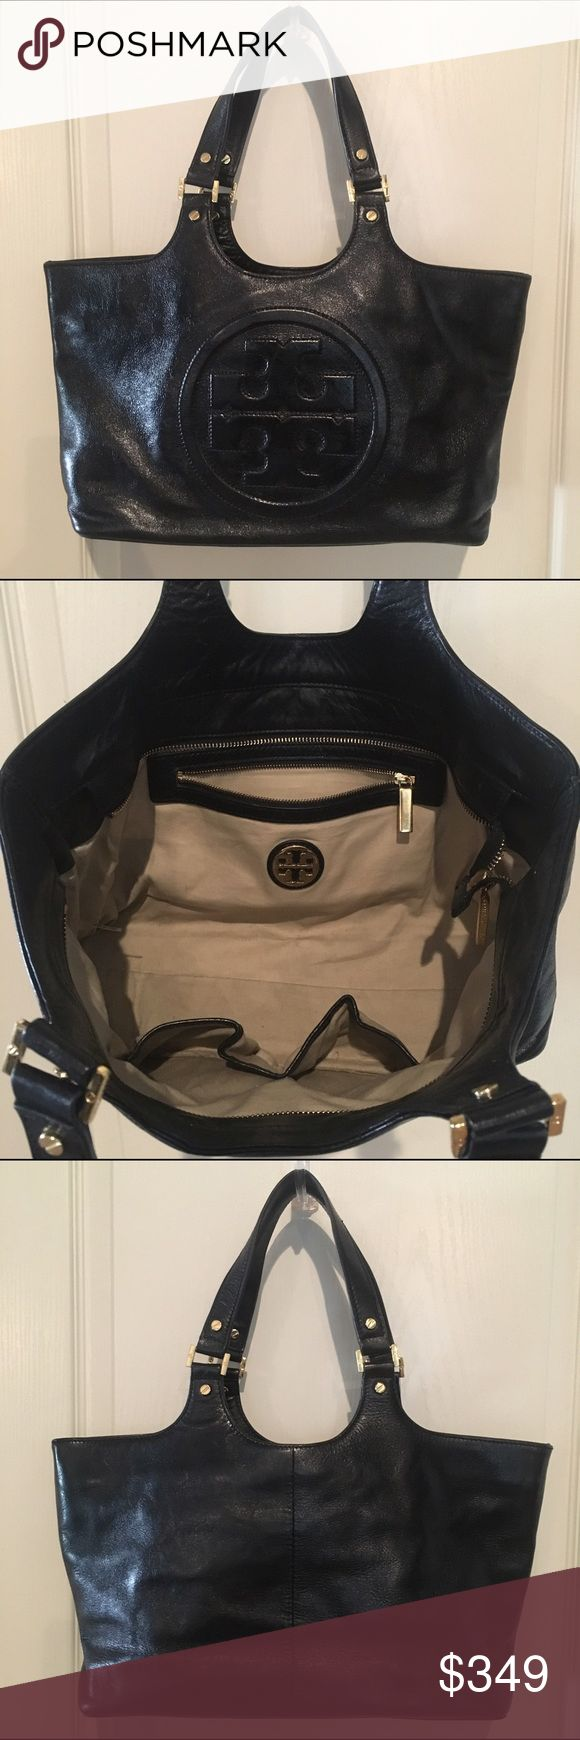 TORY BURCH 'BOMBE' BLACK LEATHER HANDBAG EUC TORY BURCH 'BOMBE' BLACK LEATHER ZIPPER HANDBAG EUC ❤️ Pre-Loved with lots of life left ❤️ NO DUST BAG • NO BOX • NO TRADES 🚫 Tory Burch Bags